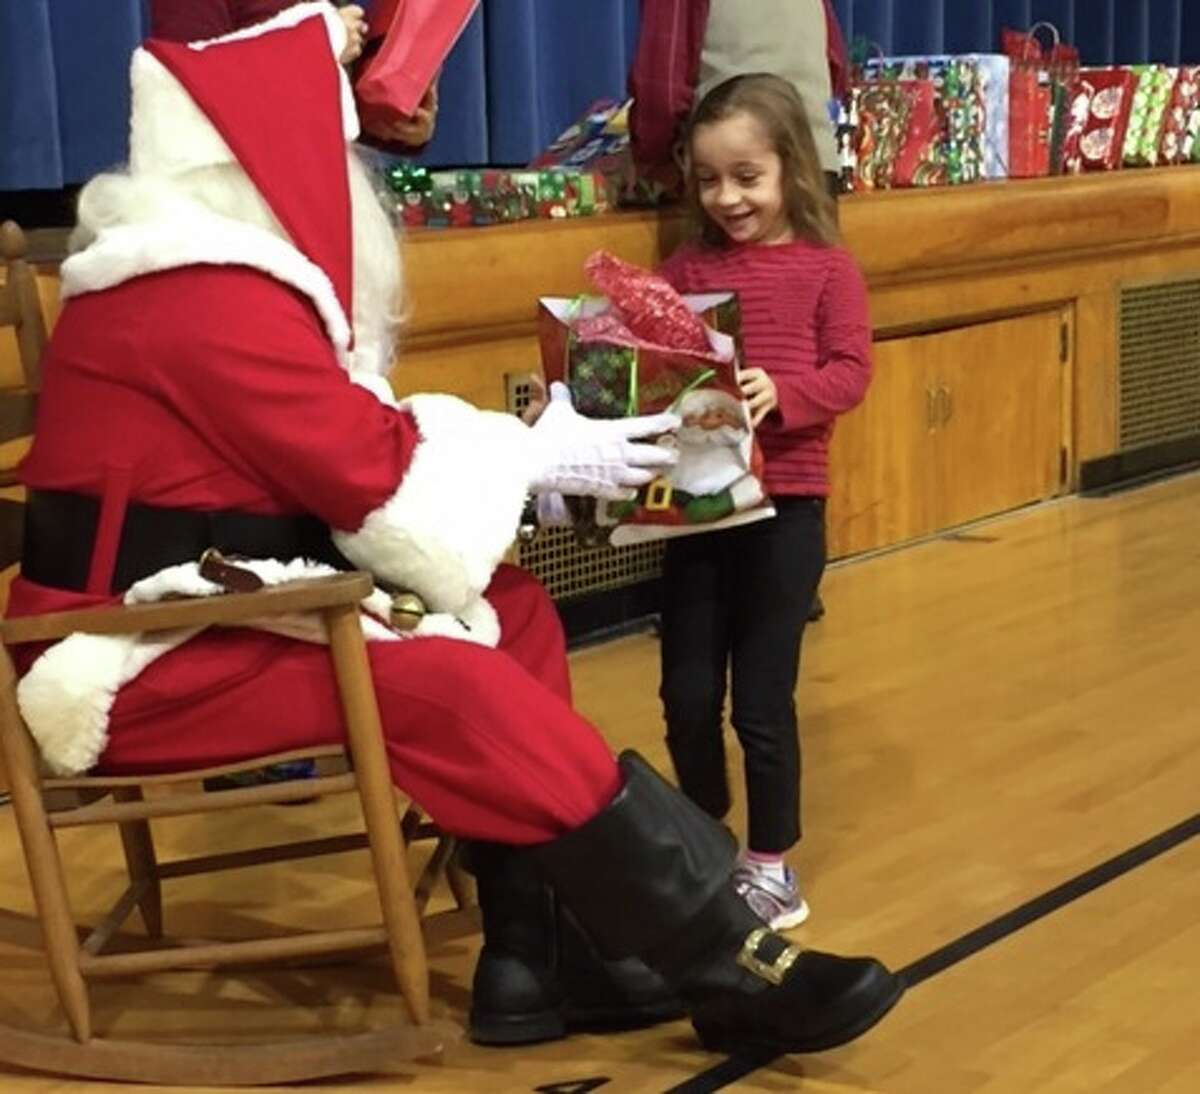 Santa offers a present to Eastlawn Elementary first-grader Taylor Marderness.